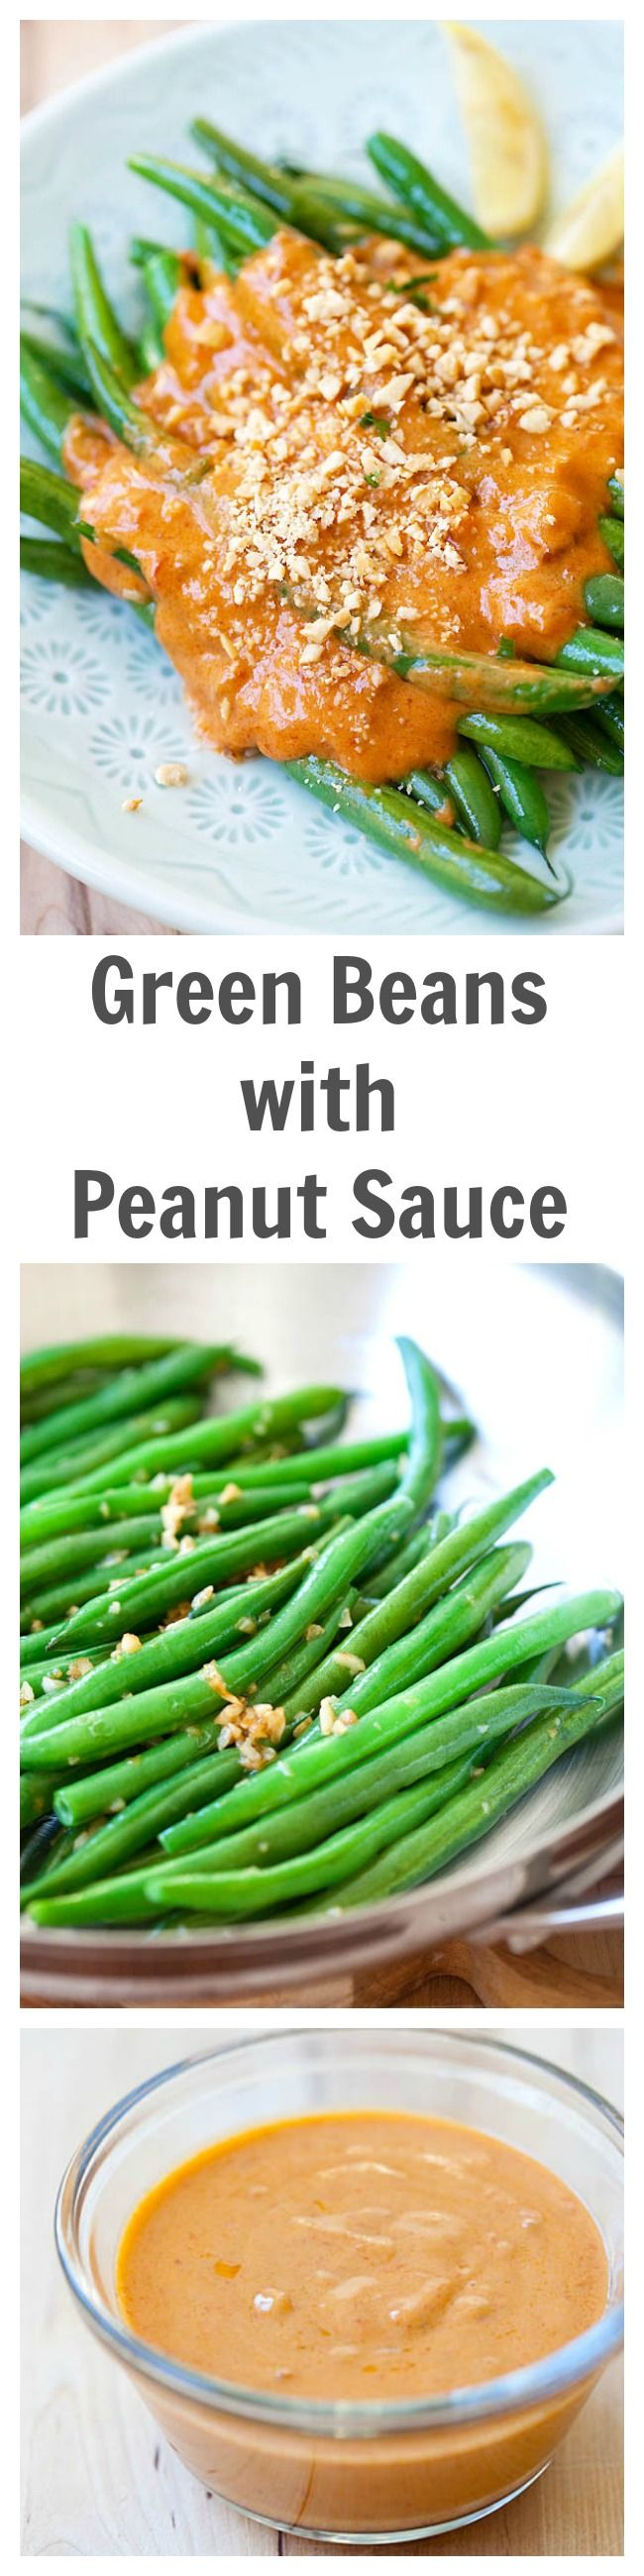 Green beans with peanut sauce. Saute green beans with garlic and top them with spicy and savory Thai peanut sauce. Easy, healthy and delicious recipe. #glutenfree #vegan